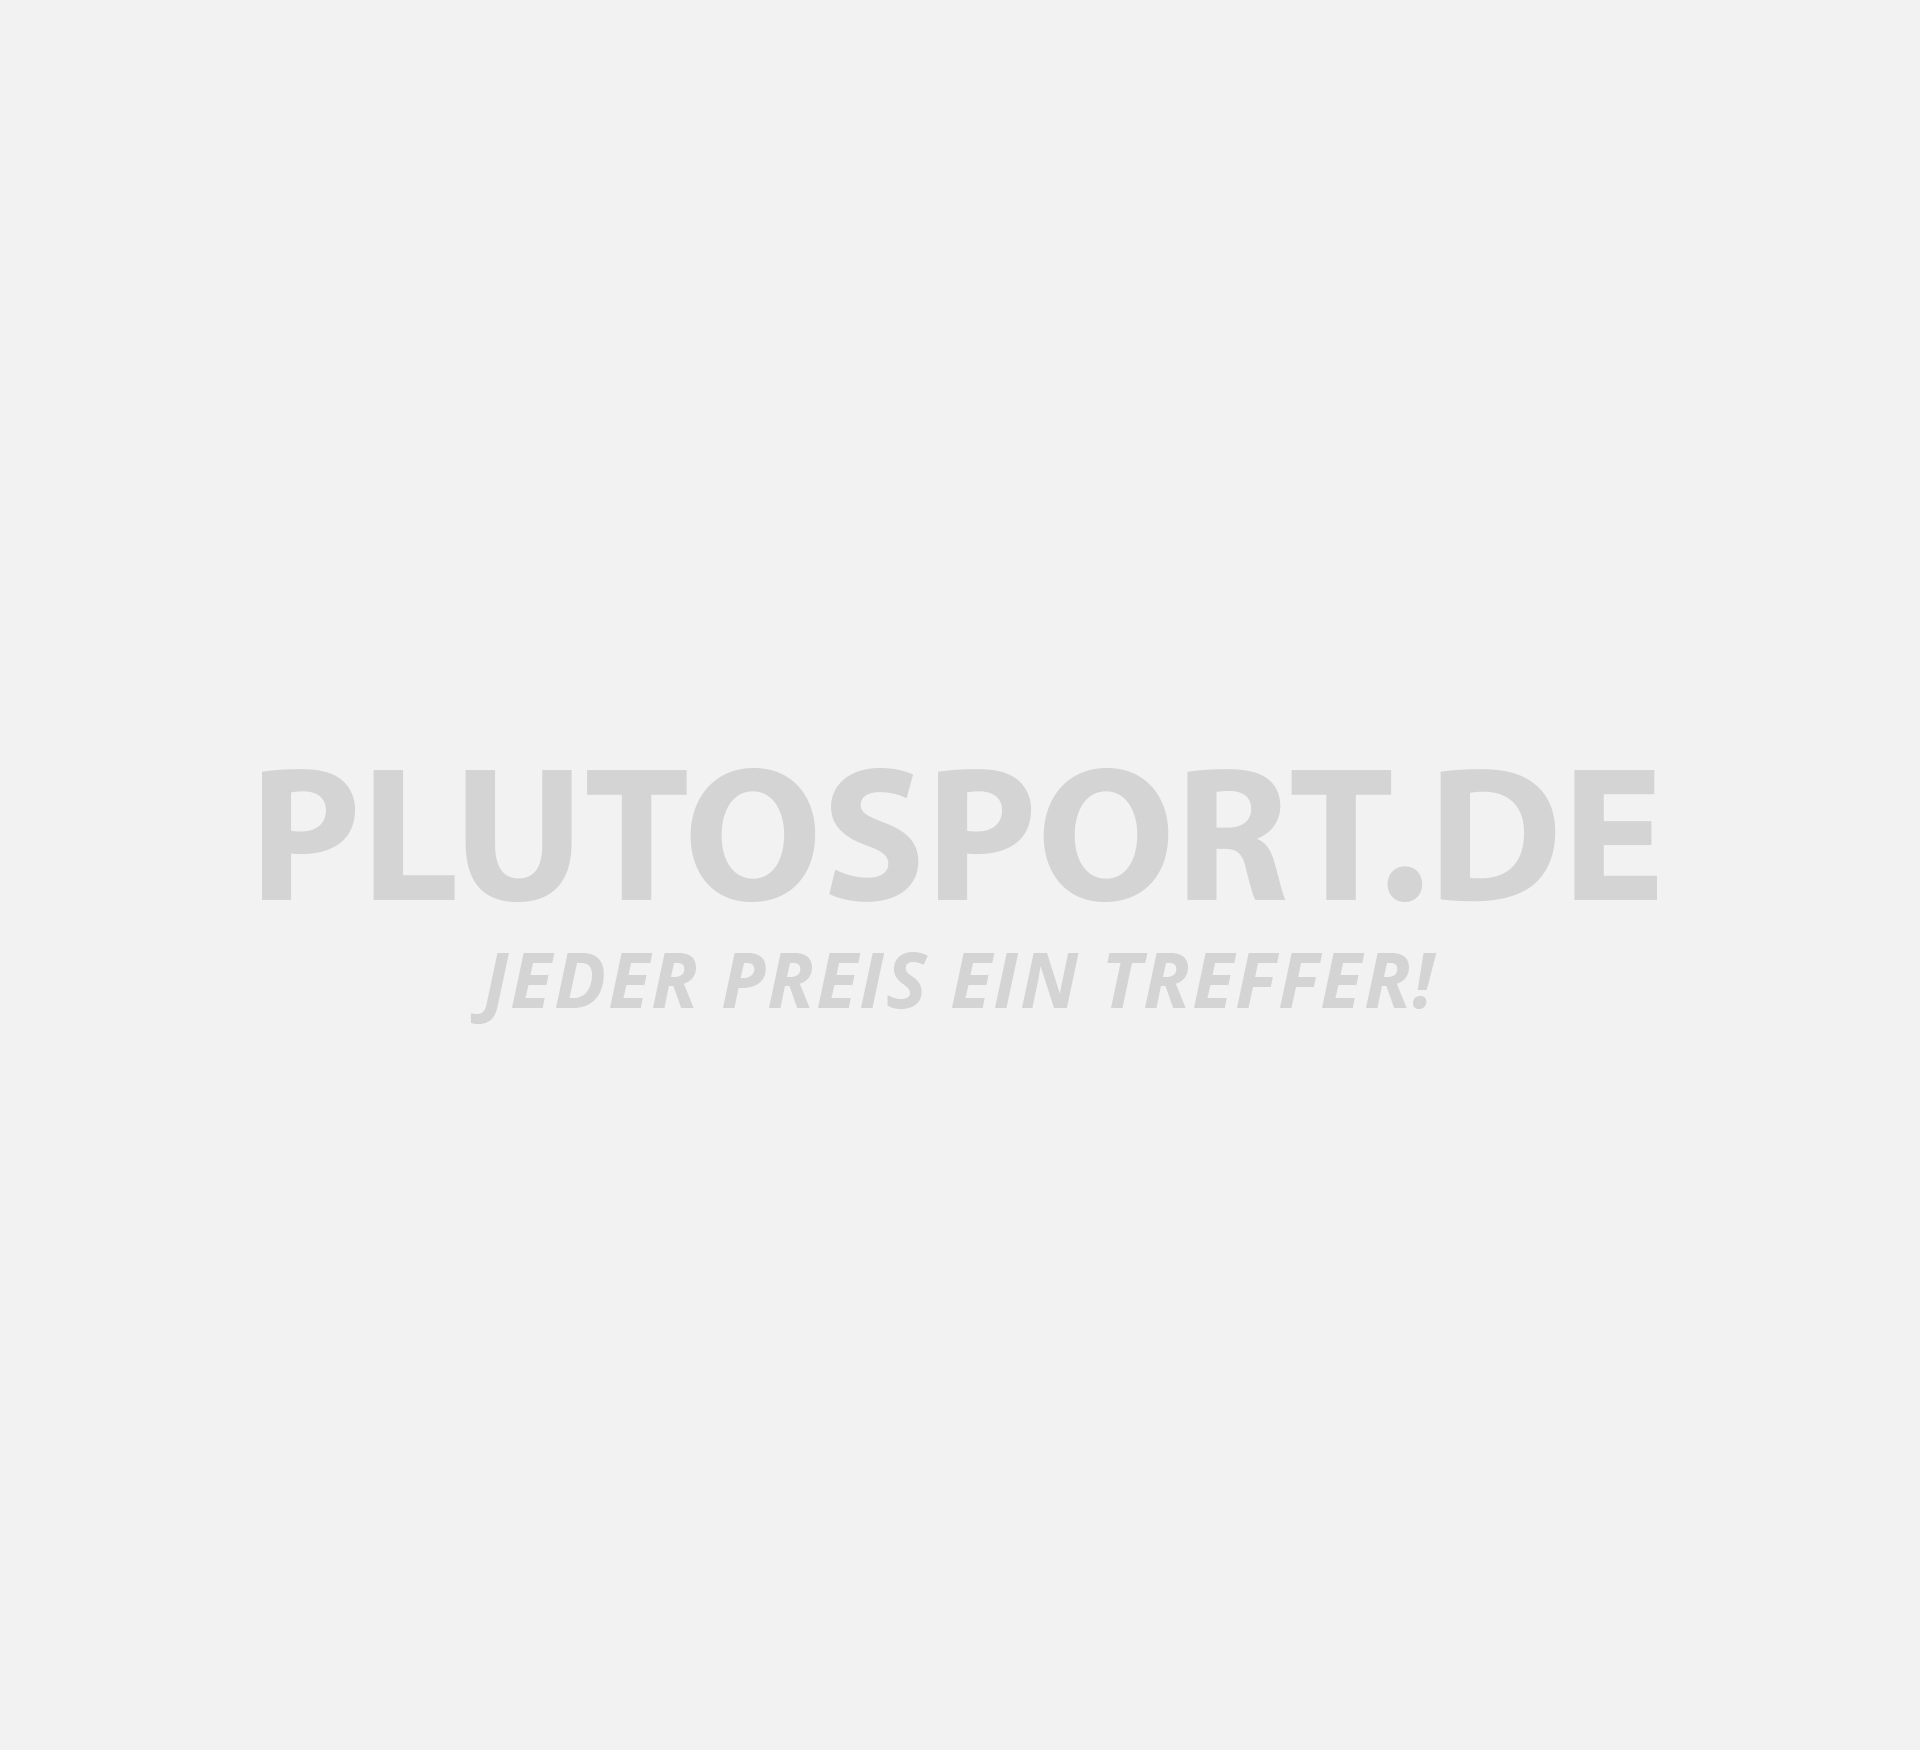 4 Sportarten Asics gs Hockey Blackheath Hockeyschuhe Gel EYqqx4na